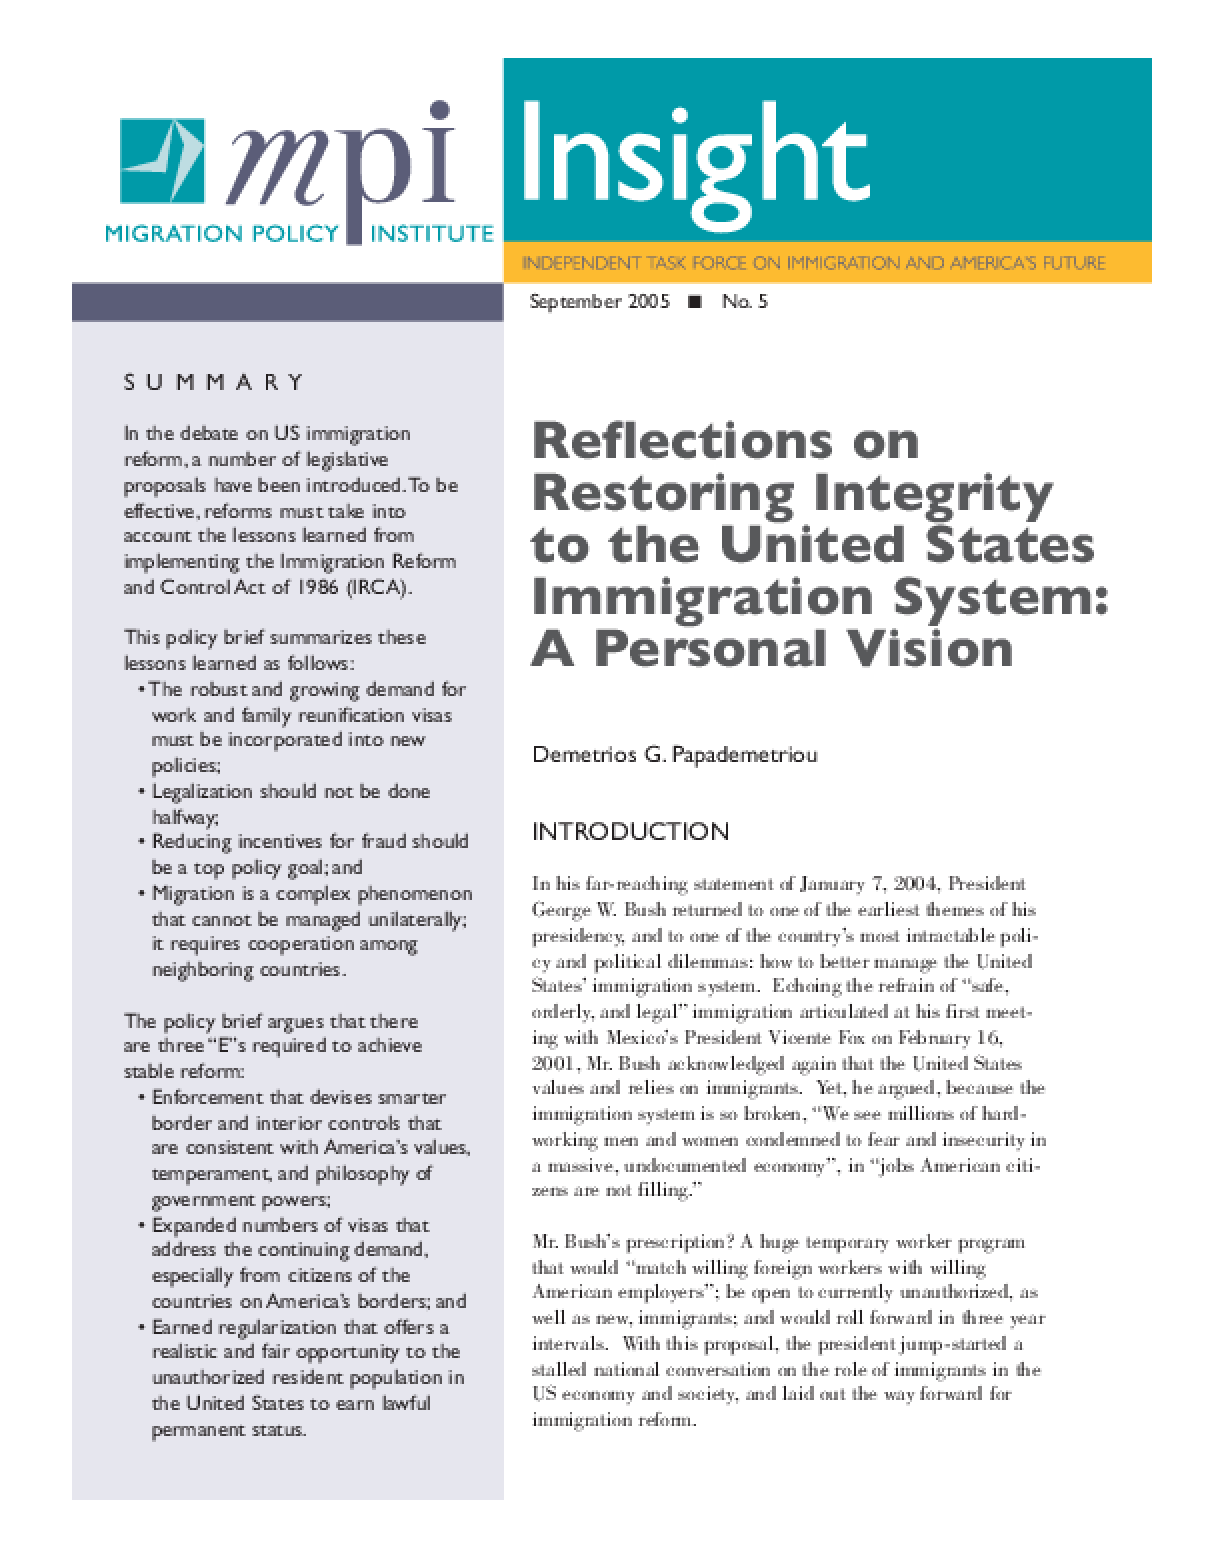 Reflections on Restoring Integrity to the United States Immigration System: A Personal Vision